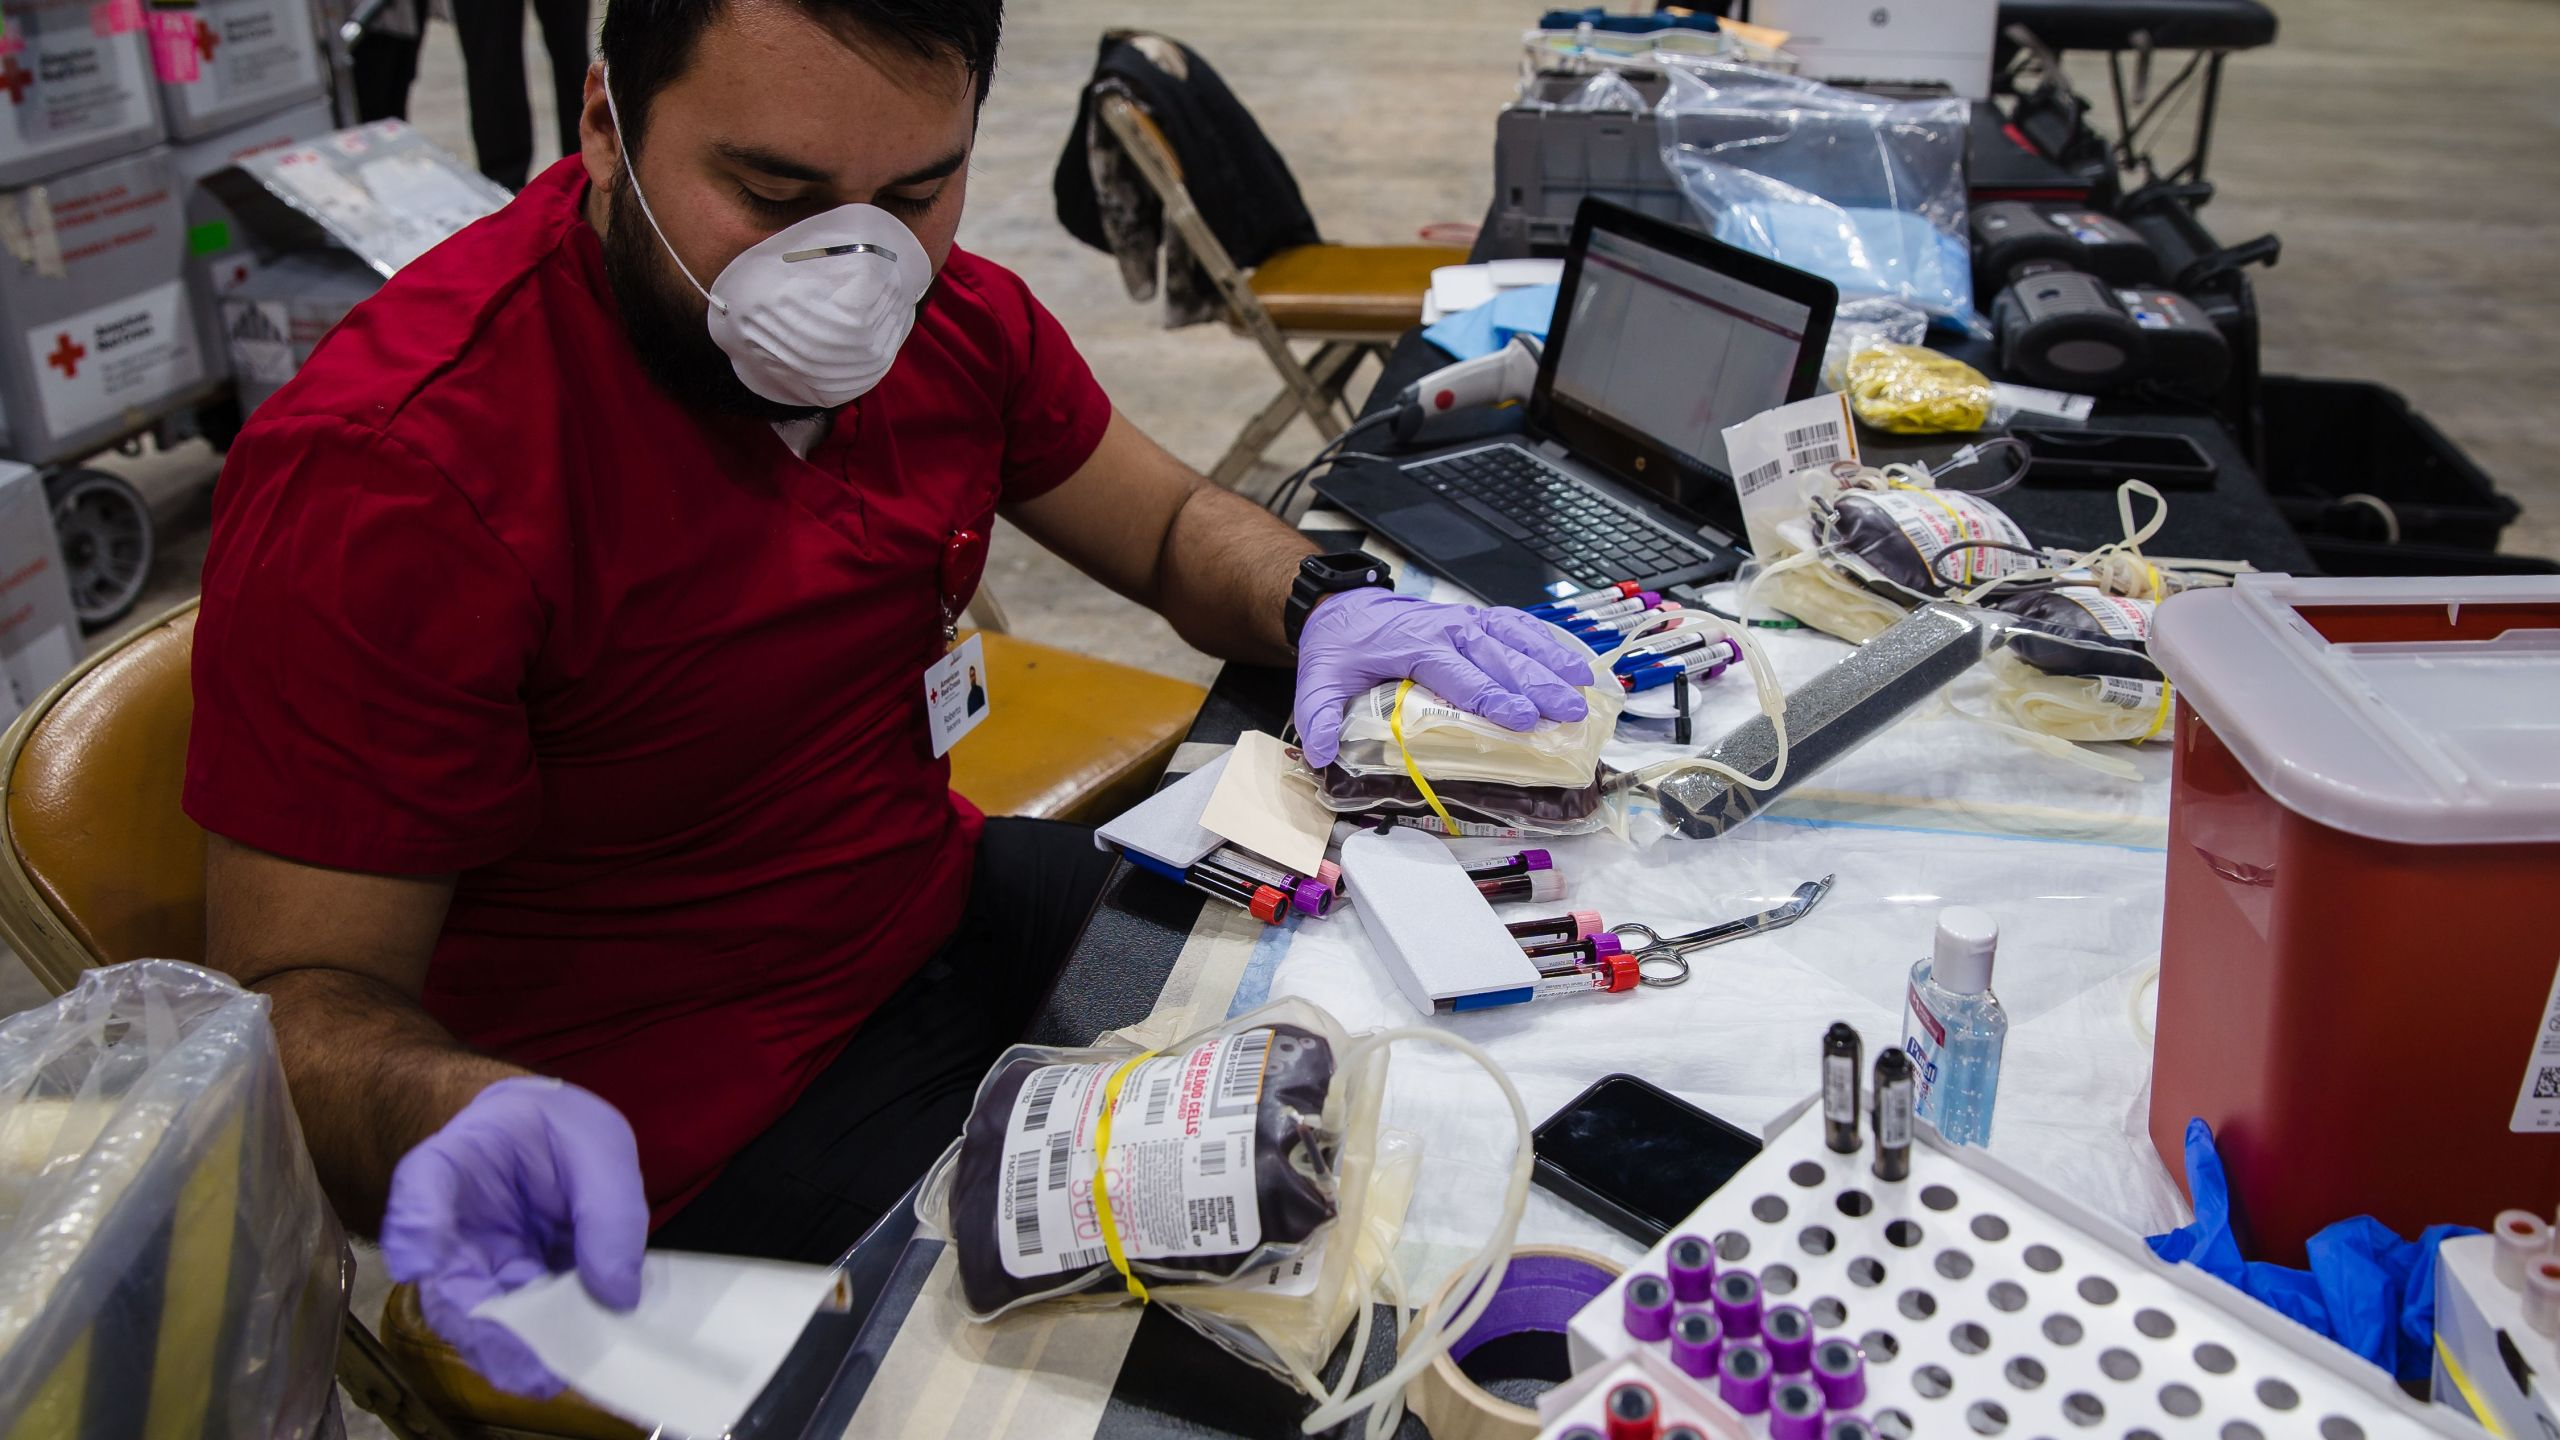 A Red Cross worker scans the bags and tubes filled with blood at Pechanga Arena on April 14, 2020 in San Diego, California. (ARIANA DREHSLER/AFP via Getty Images)